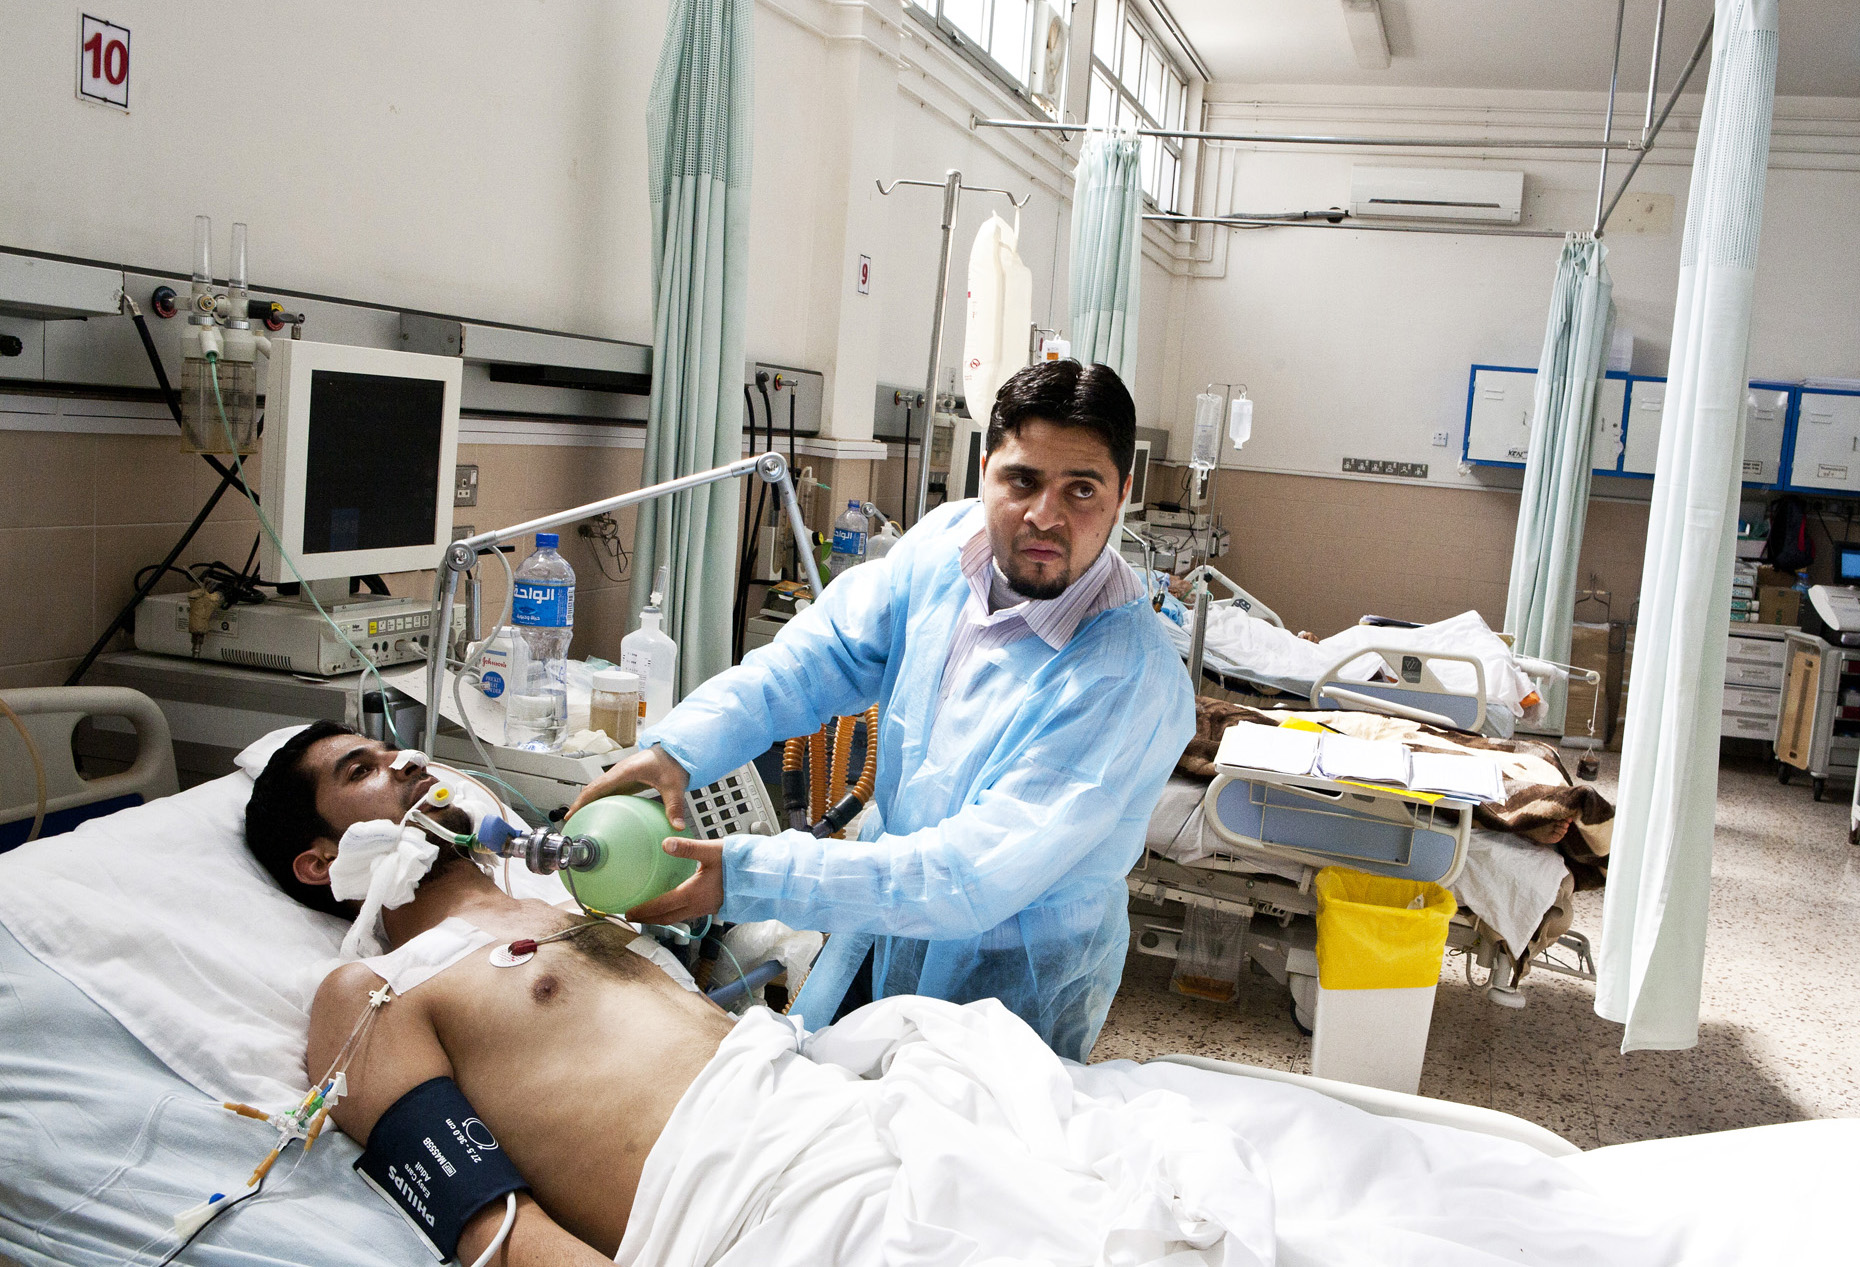 Aljalaa Hospital, Benghazi. A patient in the trauma section receives care from a Libyan doctor. Feb 2011